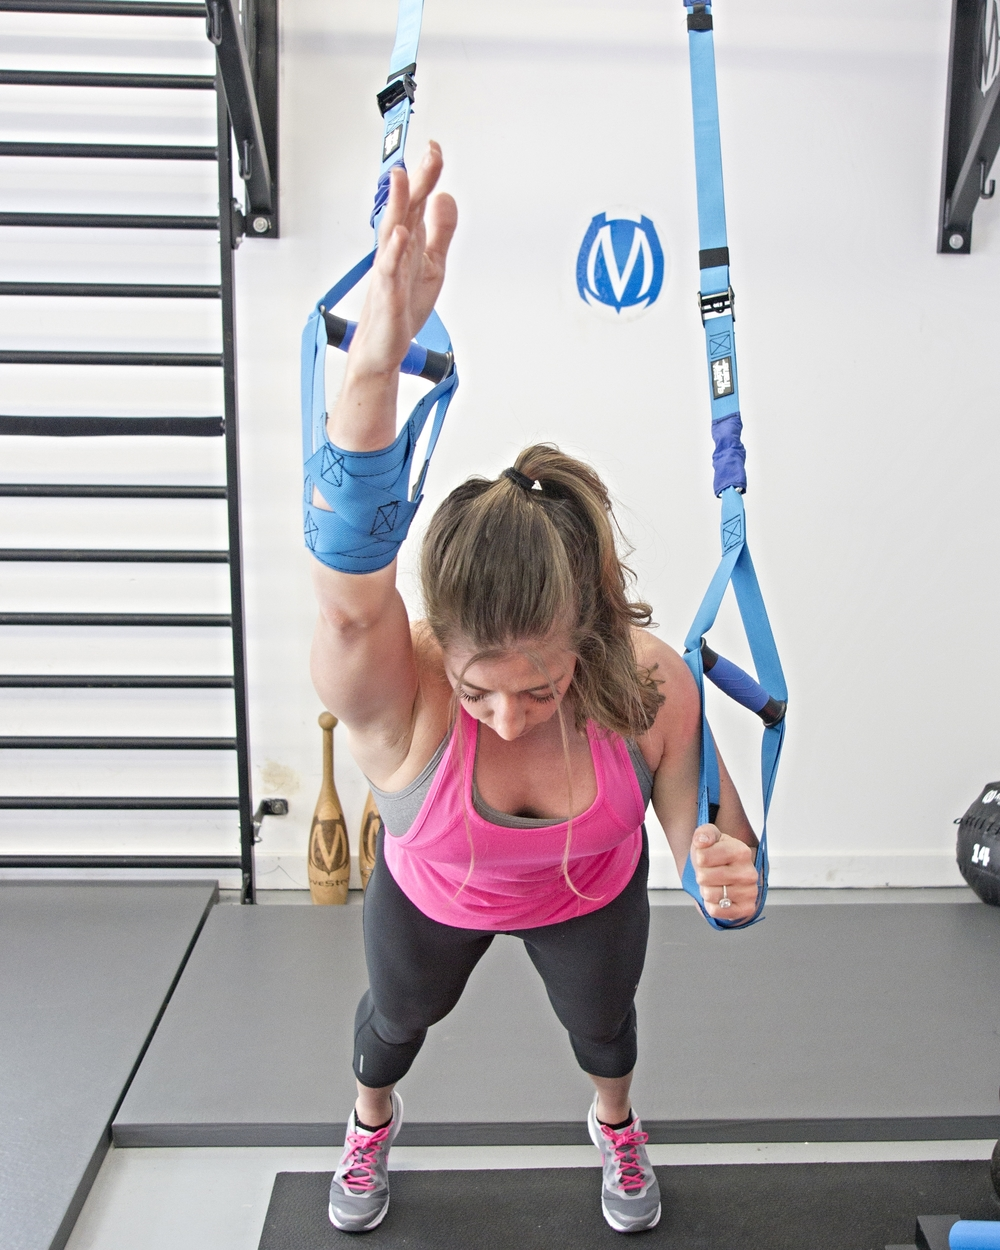 Plank reach using cradles